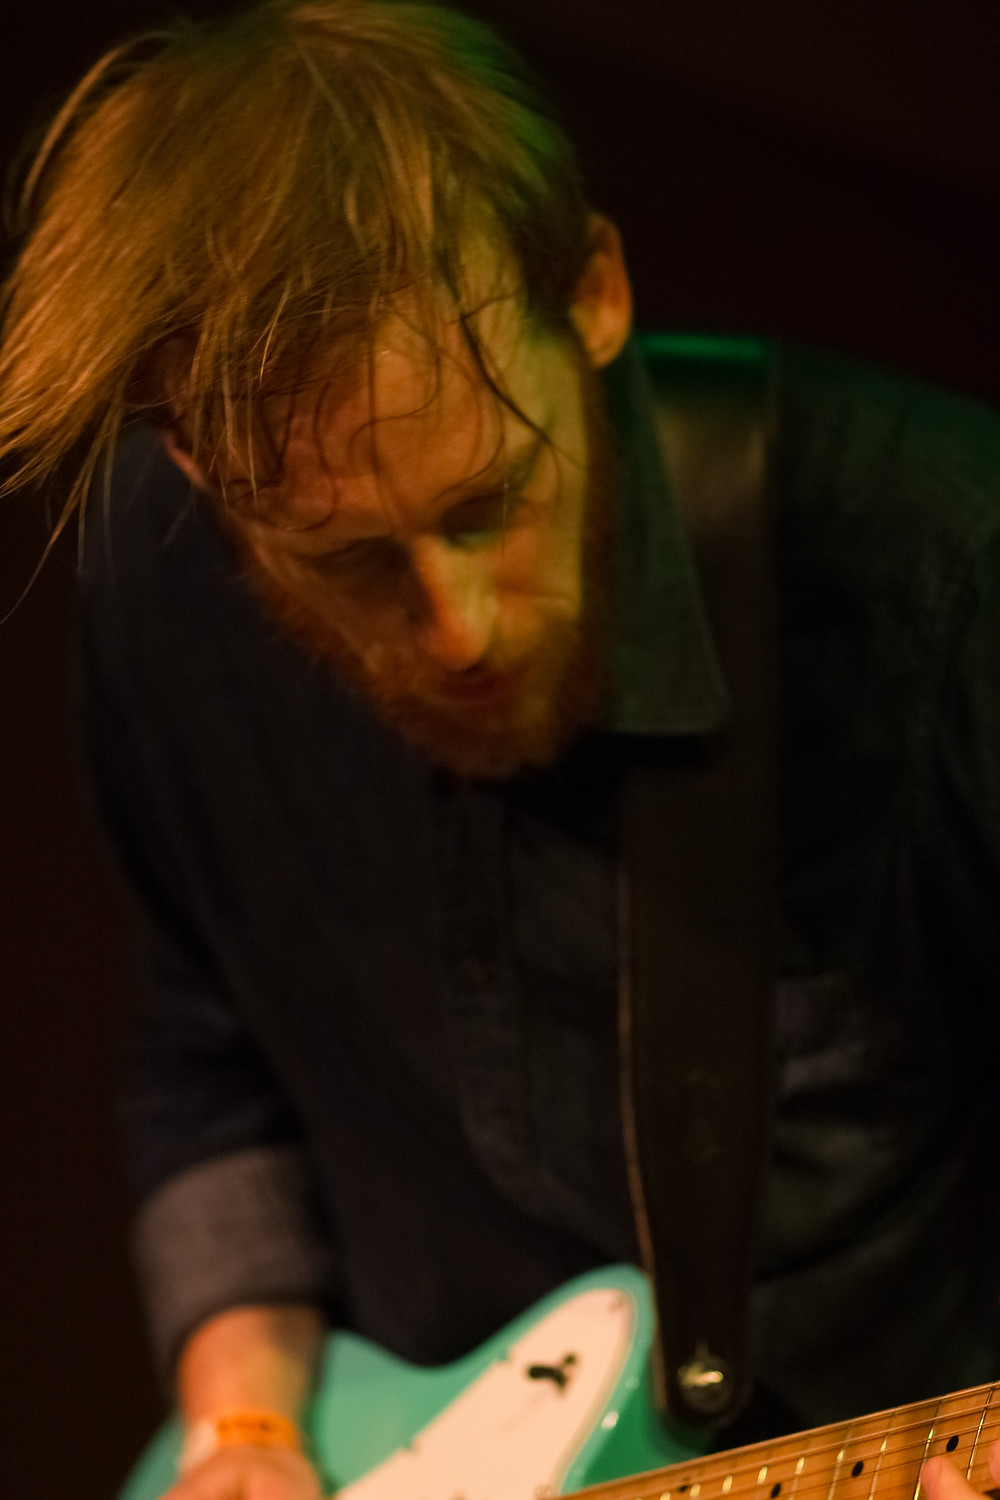 Kevin Devine and the Goddamn Band, Kevin Devine, KD+GDB, The Irenic, North Park, San Diego, Concerts, Concert Photography, Music, Bands, Pavlacka Photography, Julie Pavlacka